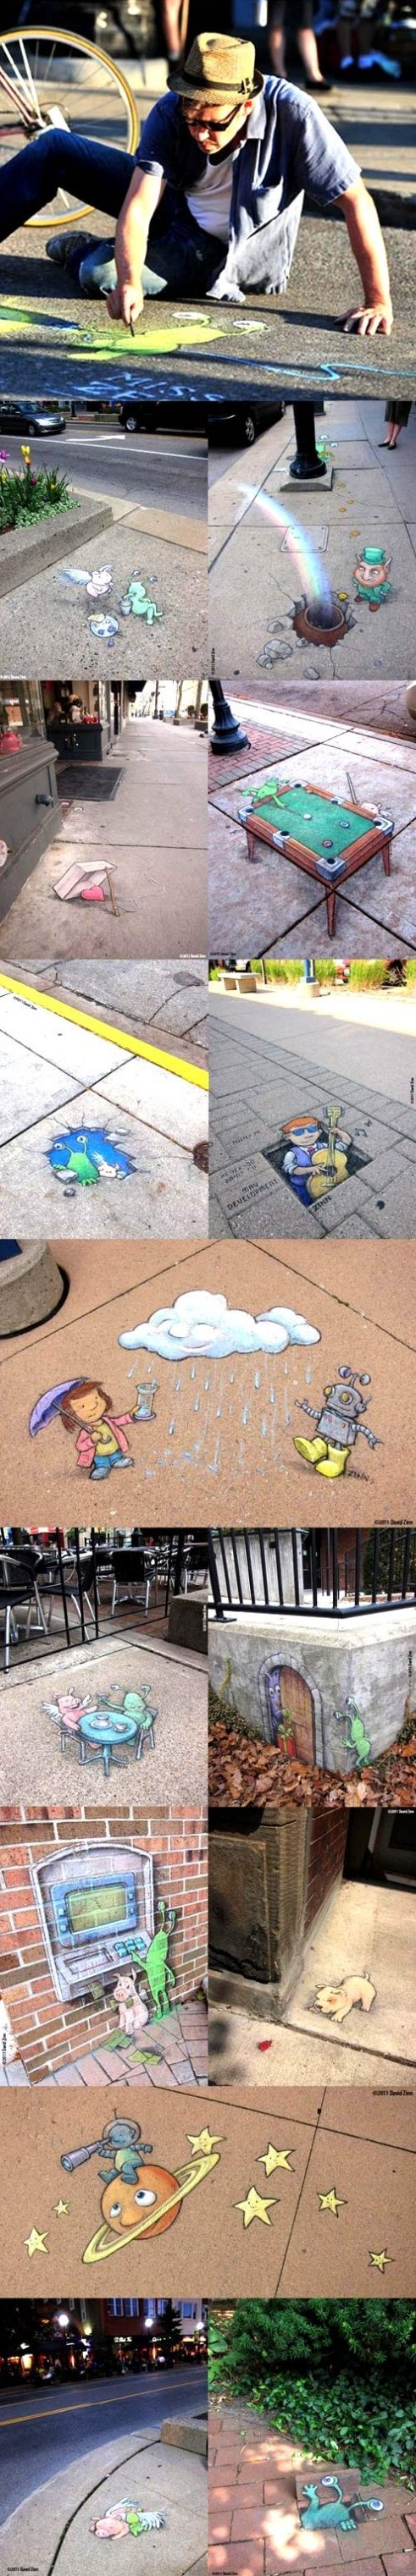 Creative Chalk Art